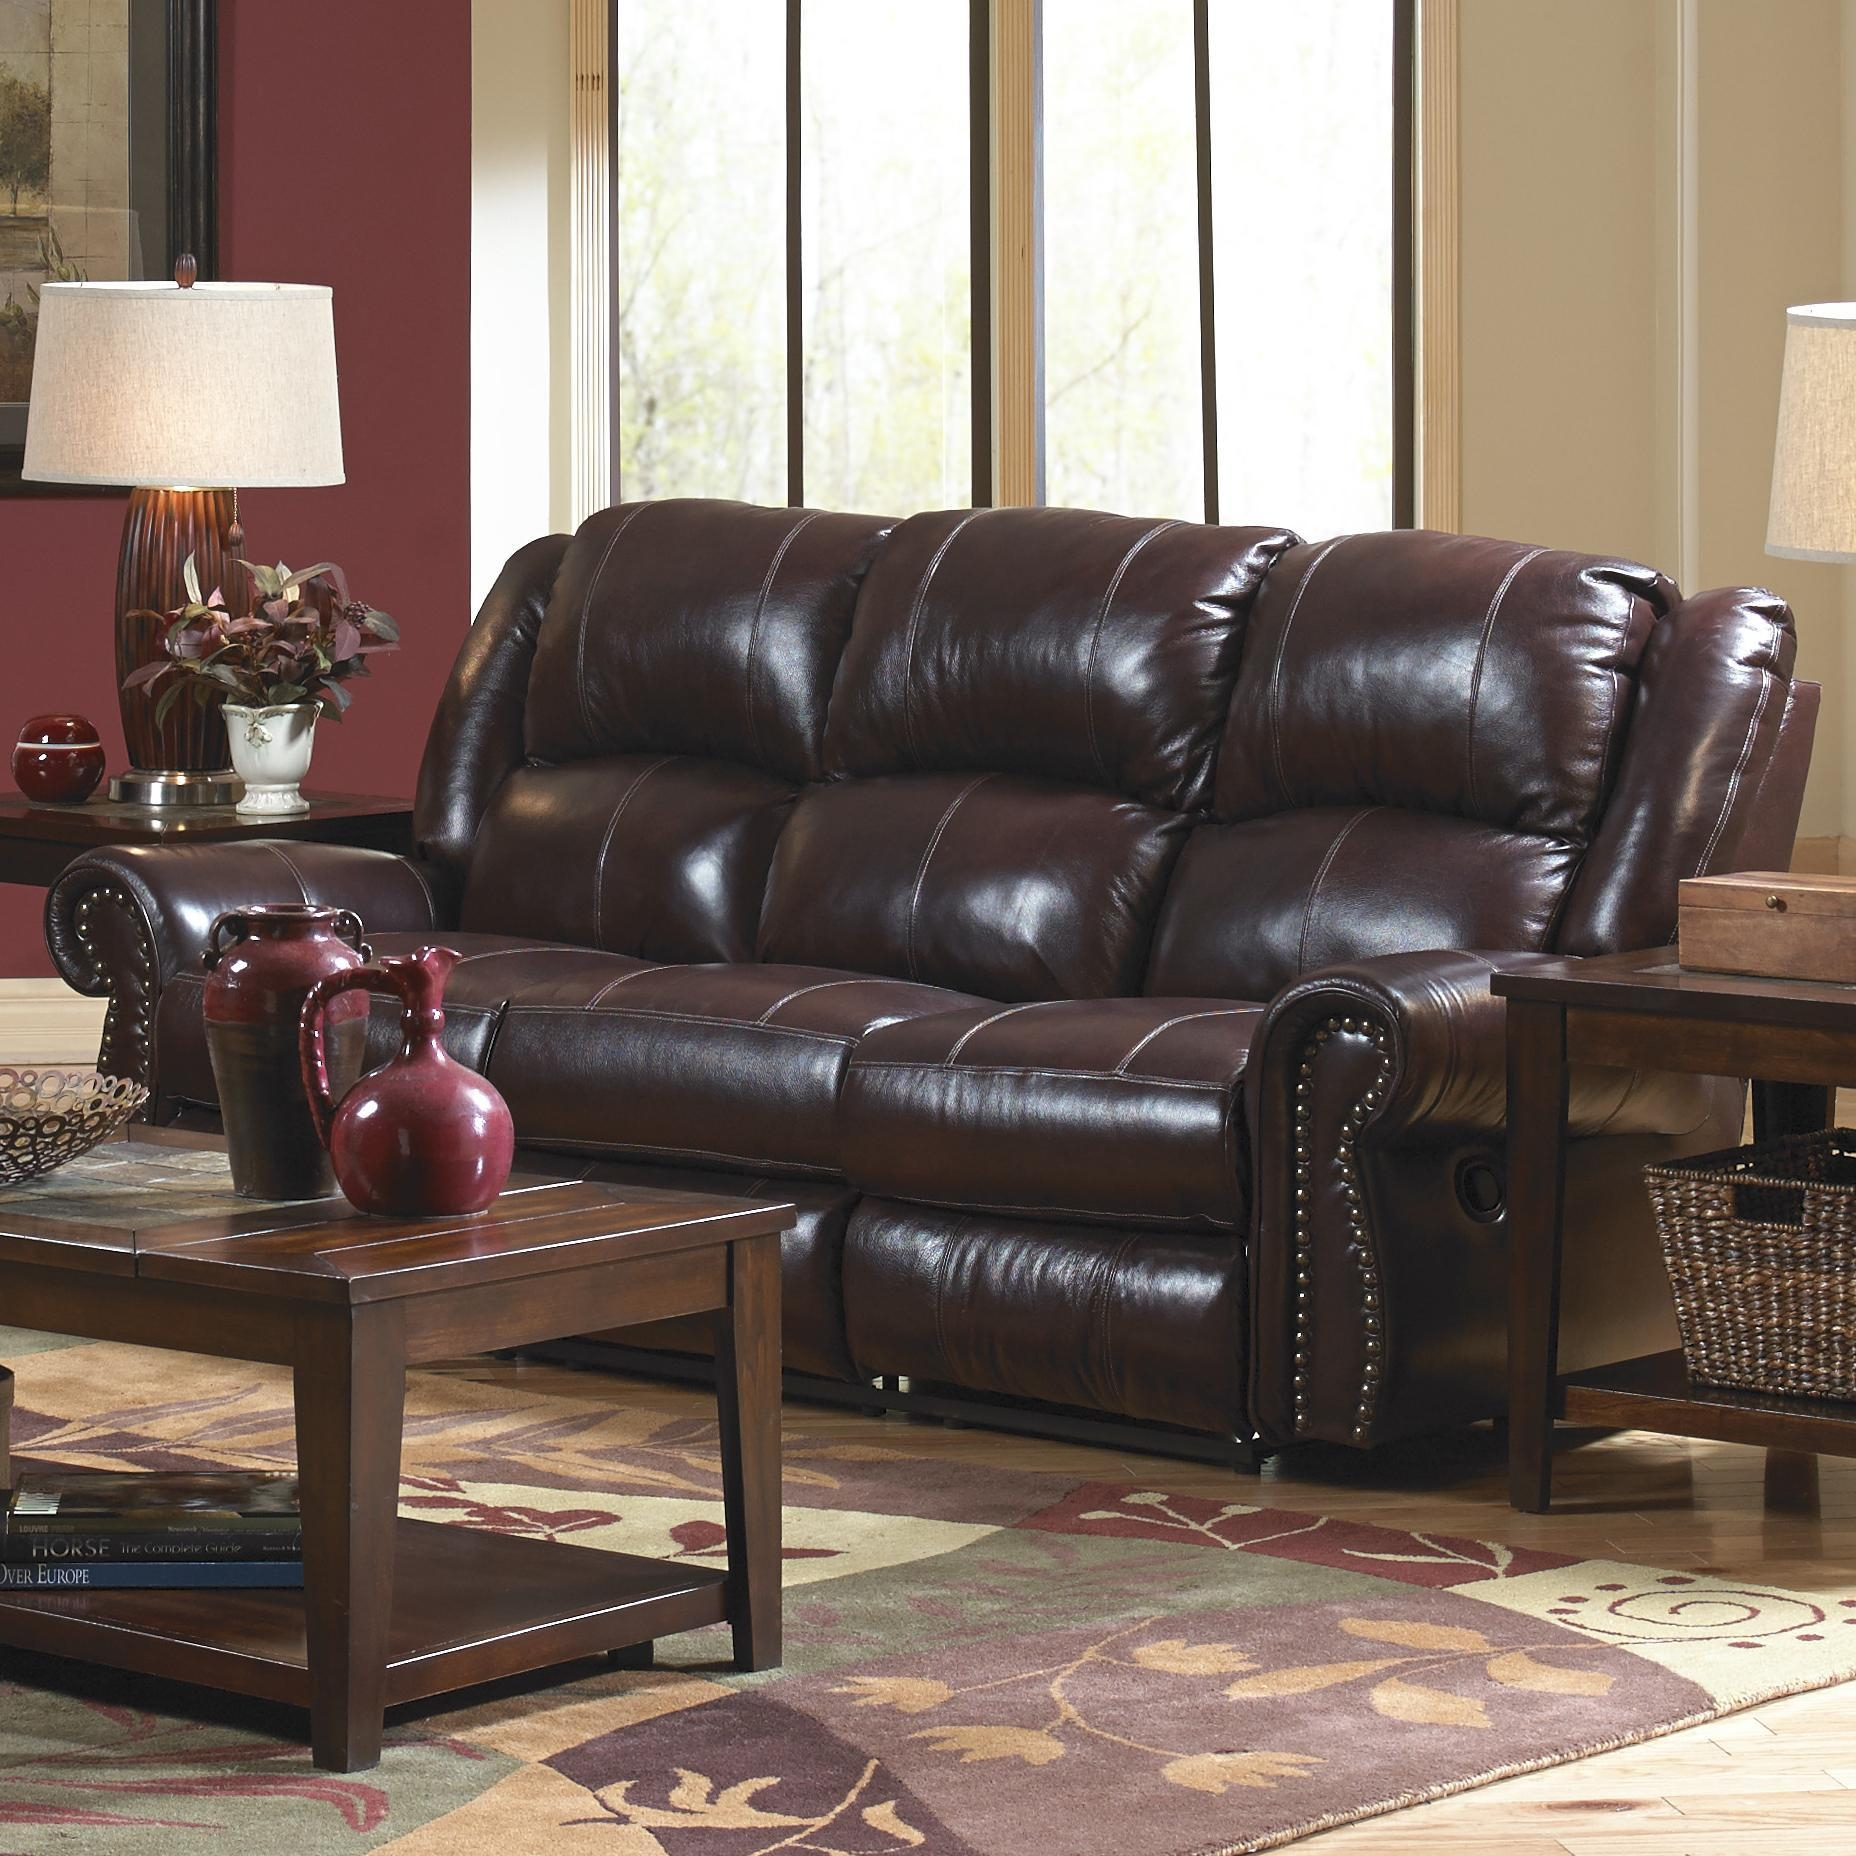 Catnapper Livingston Power Reclining Sofa With Drop Down Table And Within Catnapper Reclining Sofas (Image 9 of 20)